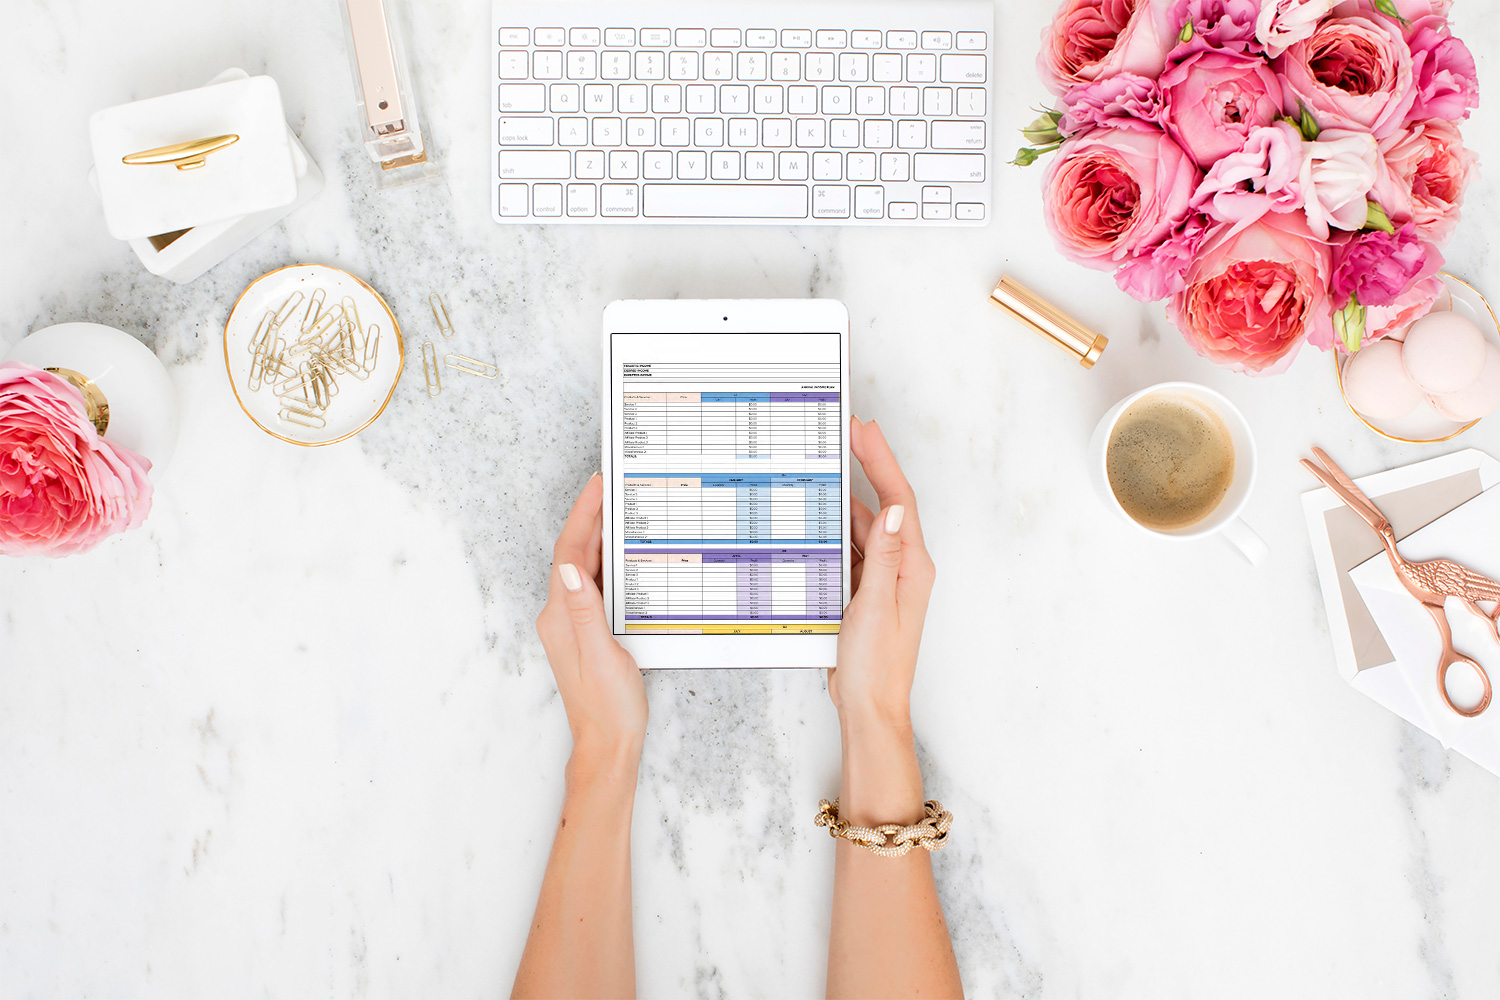 The 2019 Income Planner is a set of 4 spreadsheets that helps you set revenue goals and track your income and expenses.